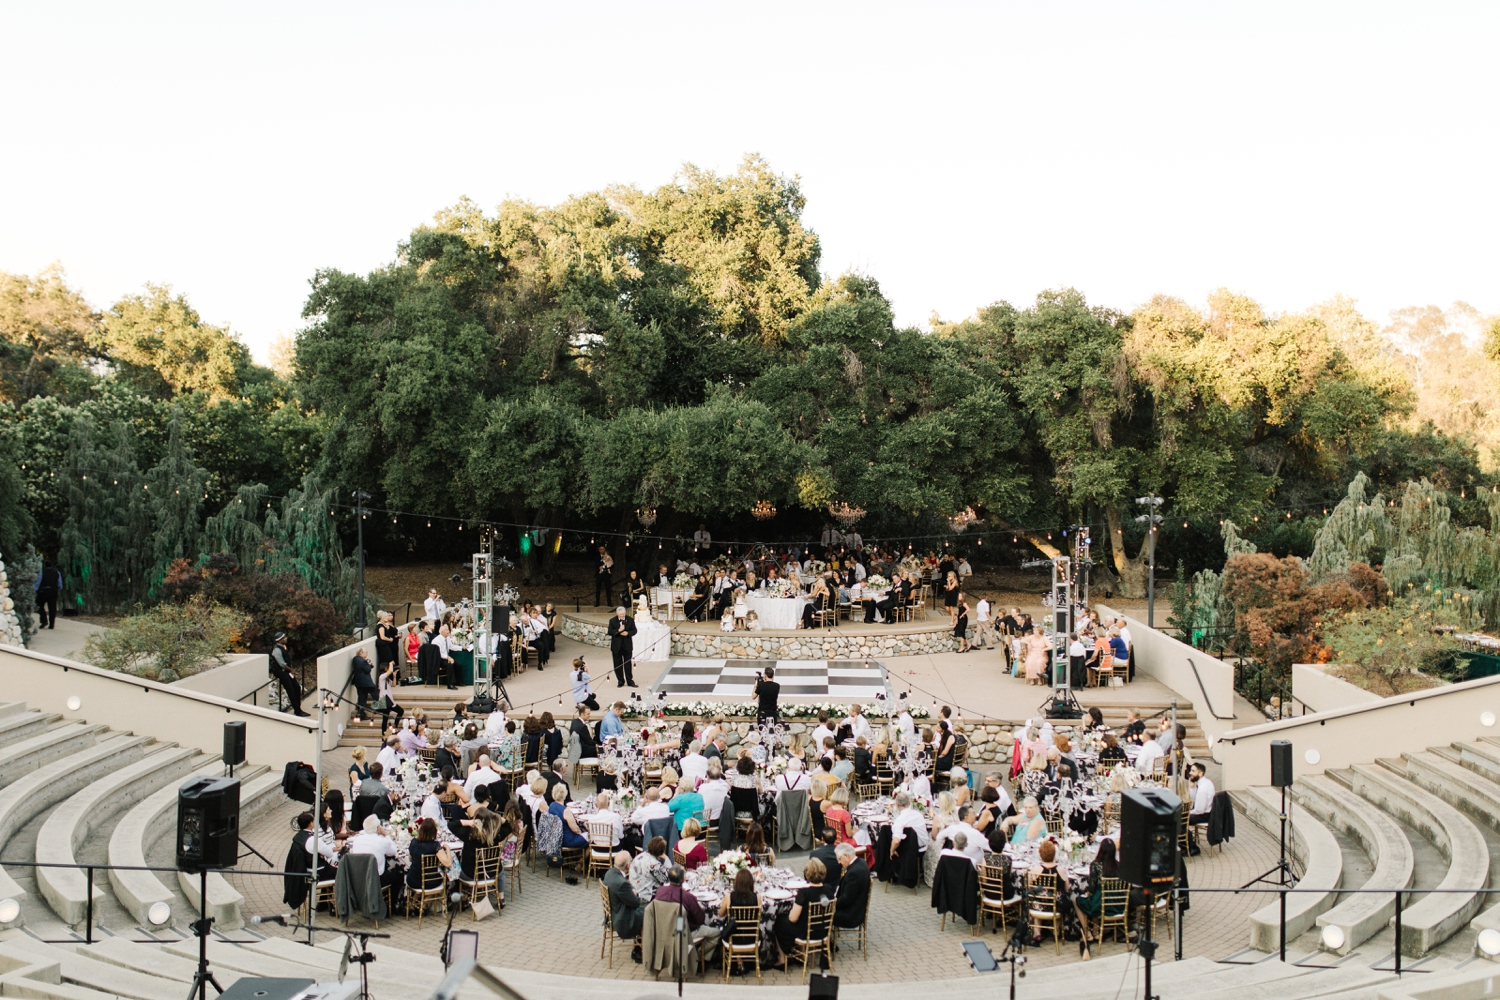 Sontag-Greek-Theater-Pomona-Colleges-Claremont-California-Wedding-Photo-46.JPG